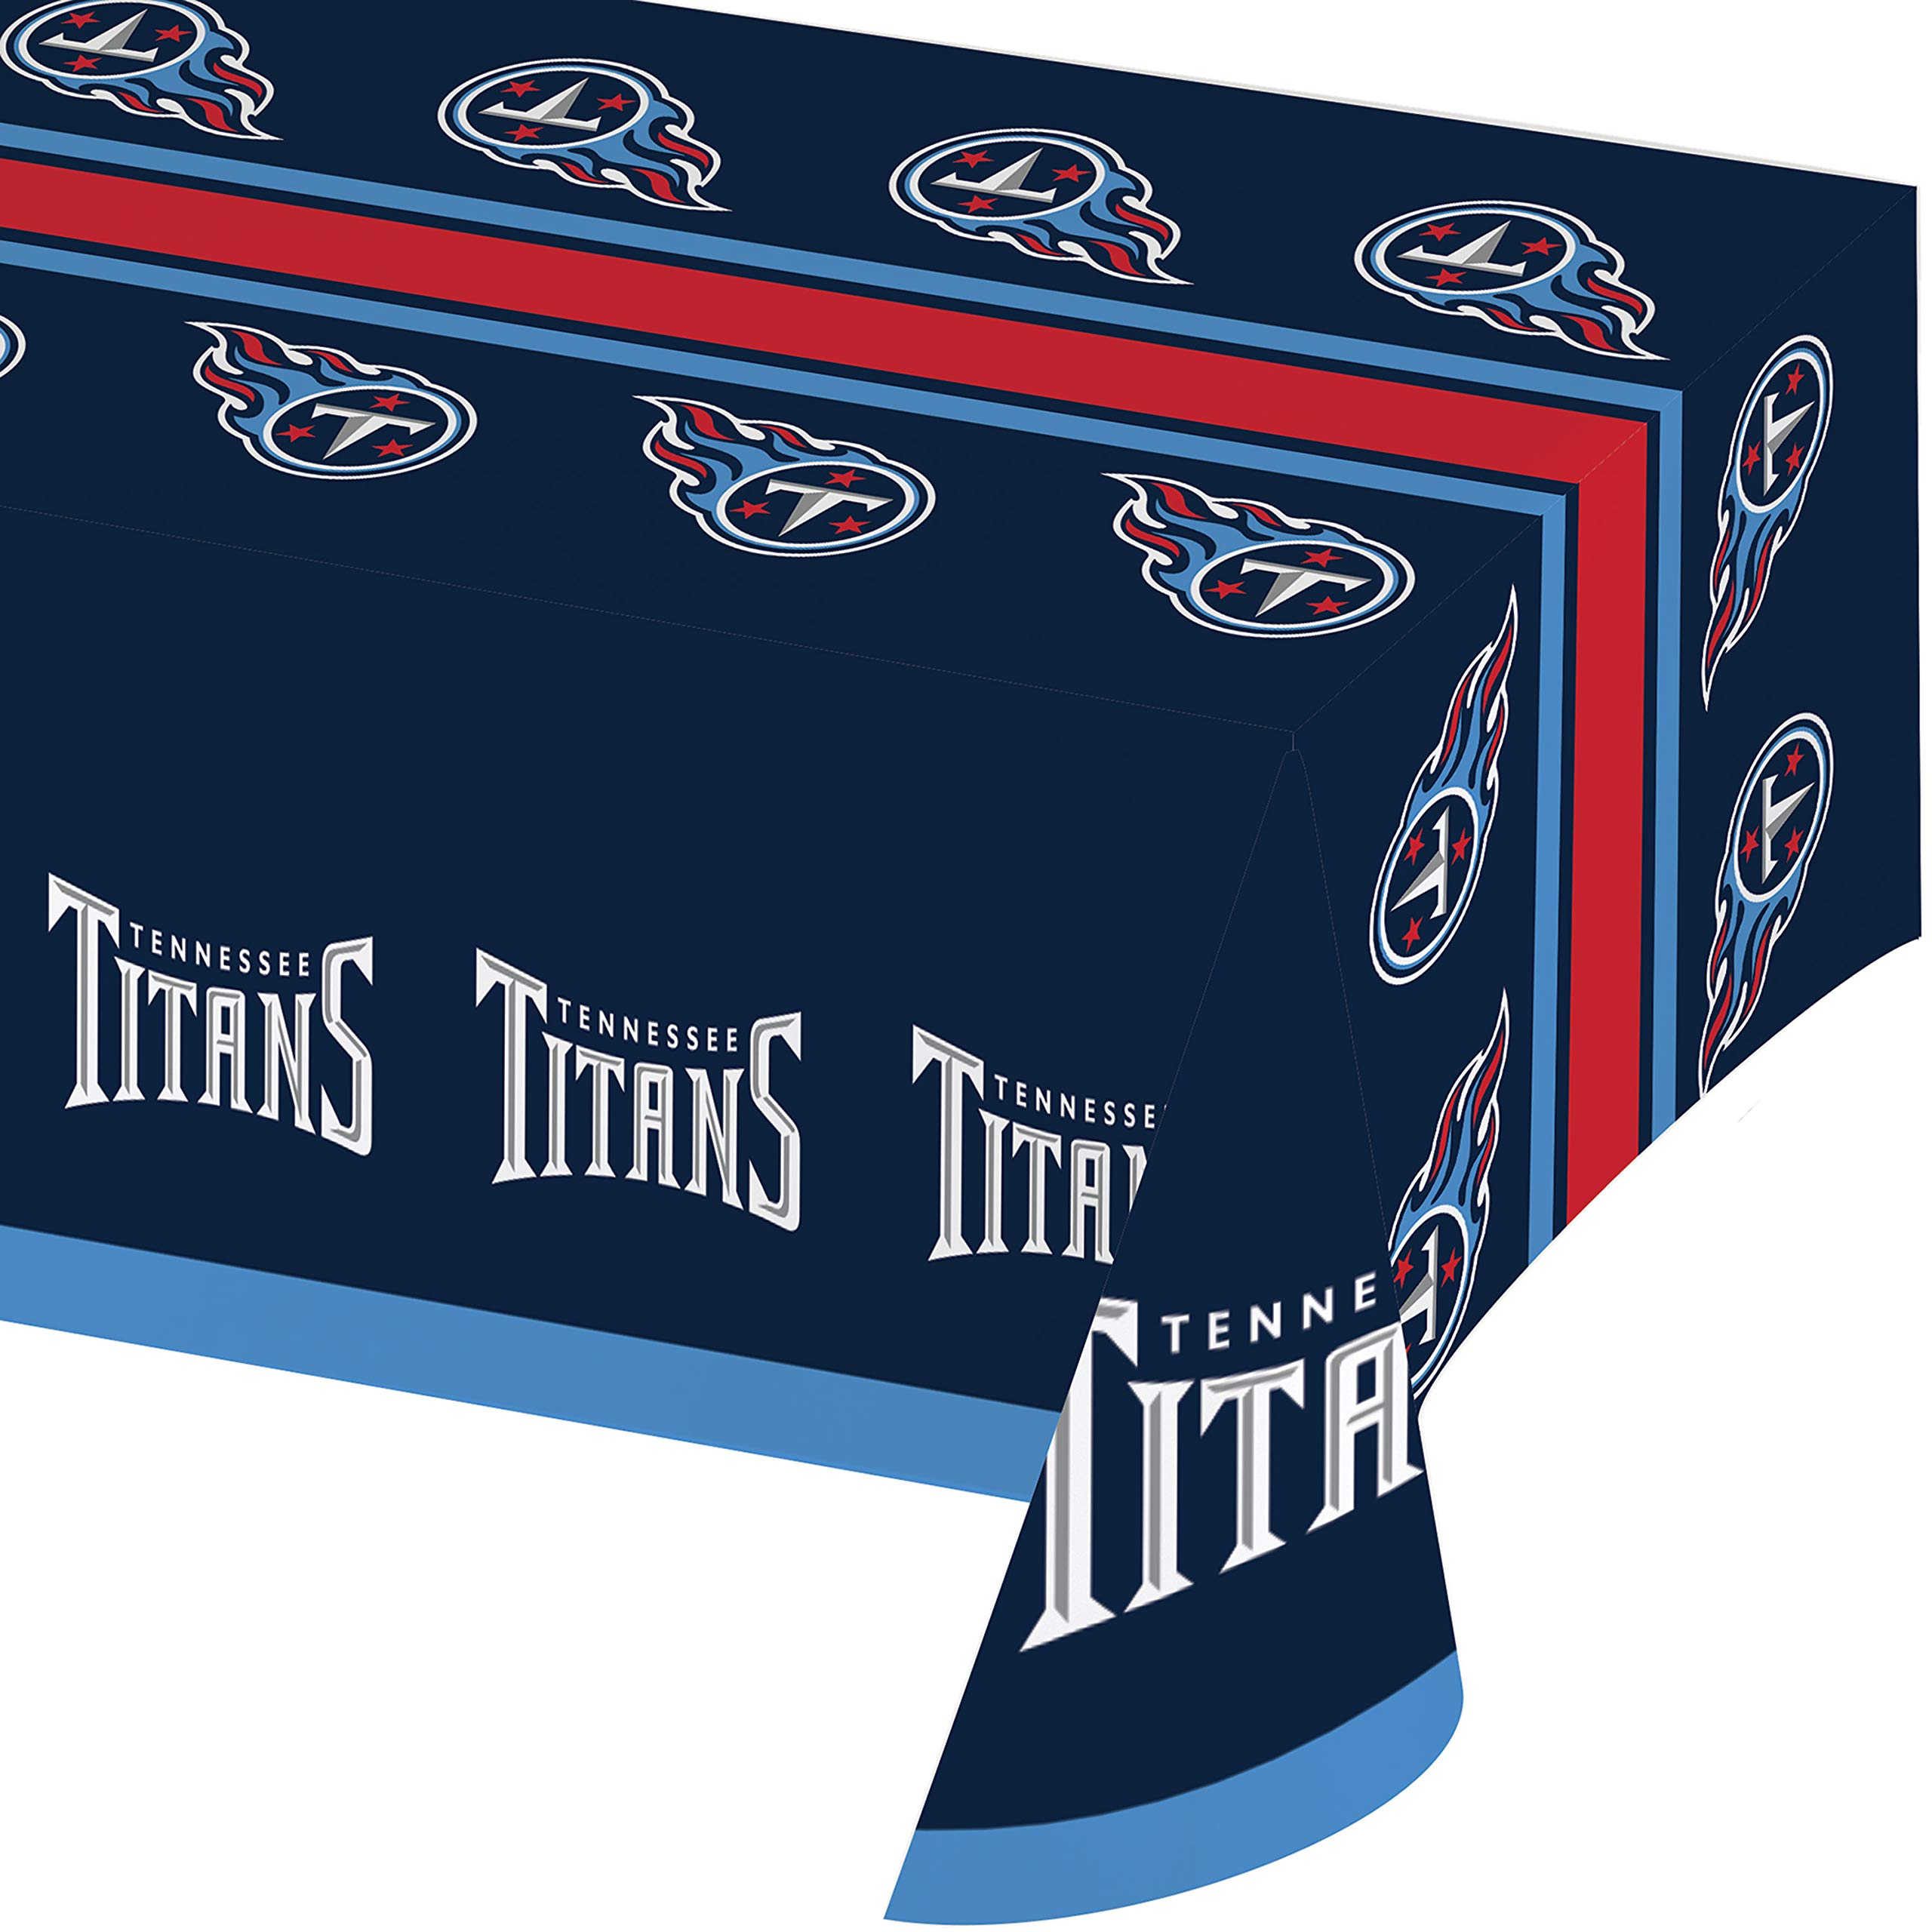 Tennessee Titans Plastic Tablecloths, 3 ct by Creative Converting